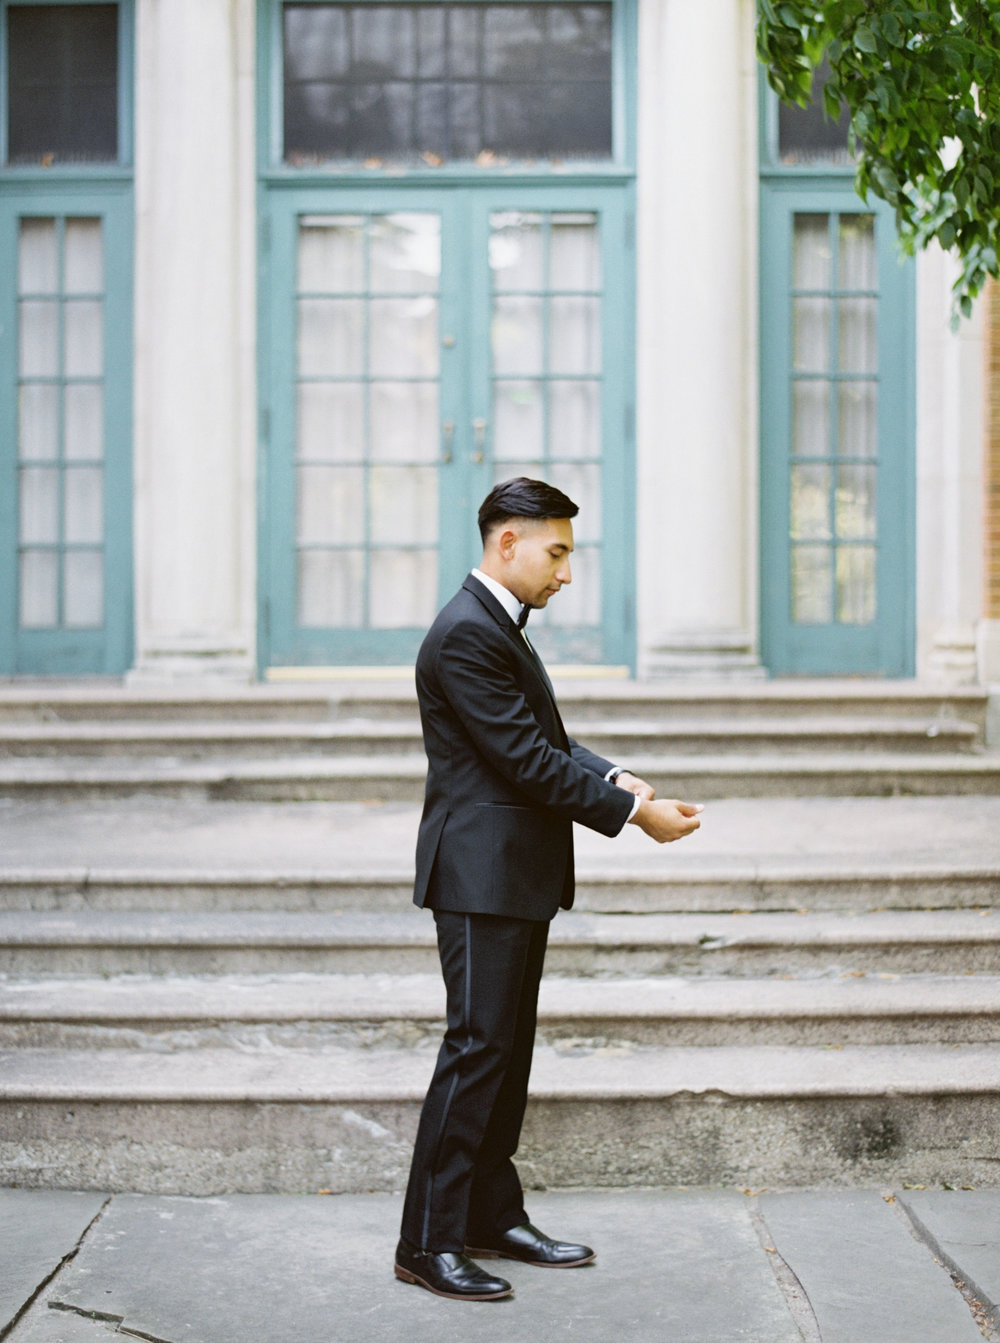 Black Tie Wedding at the Columbus Park Refectory in Chicago for Month of Coordination and Elopement planning | Your Day by MK